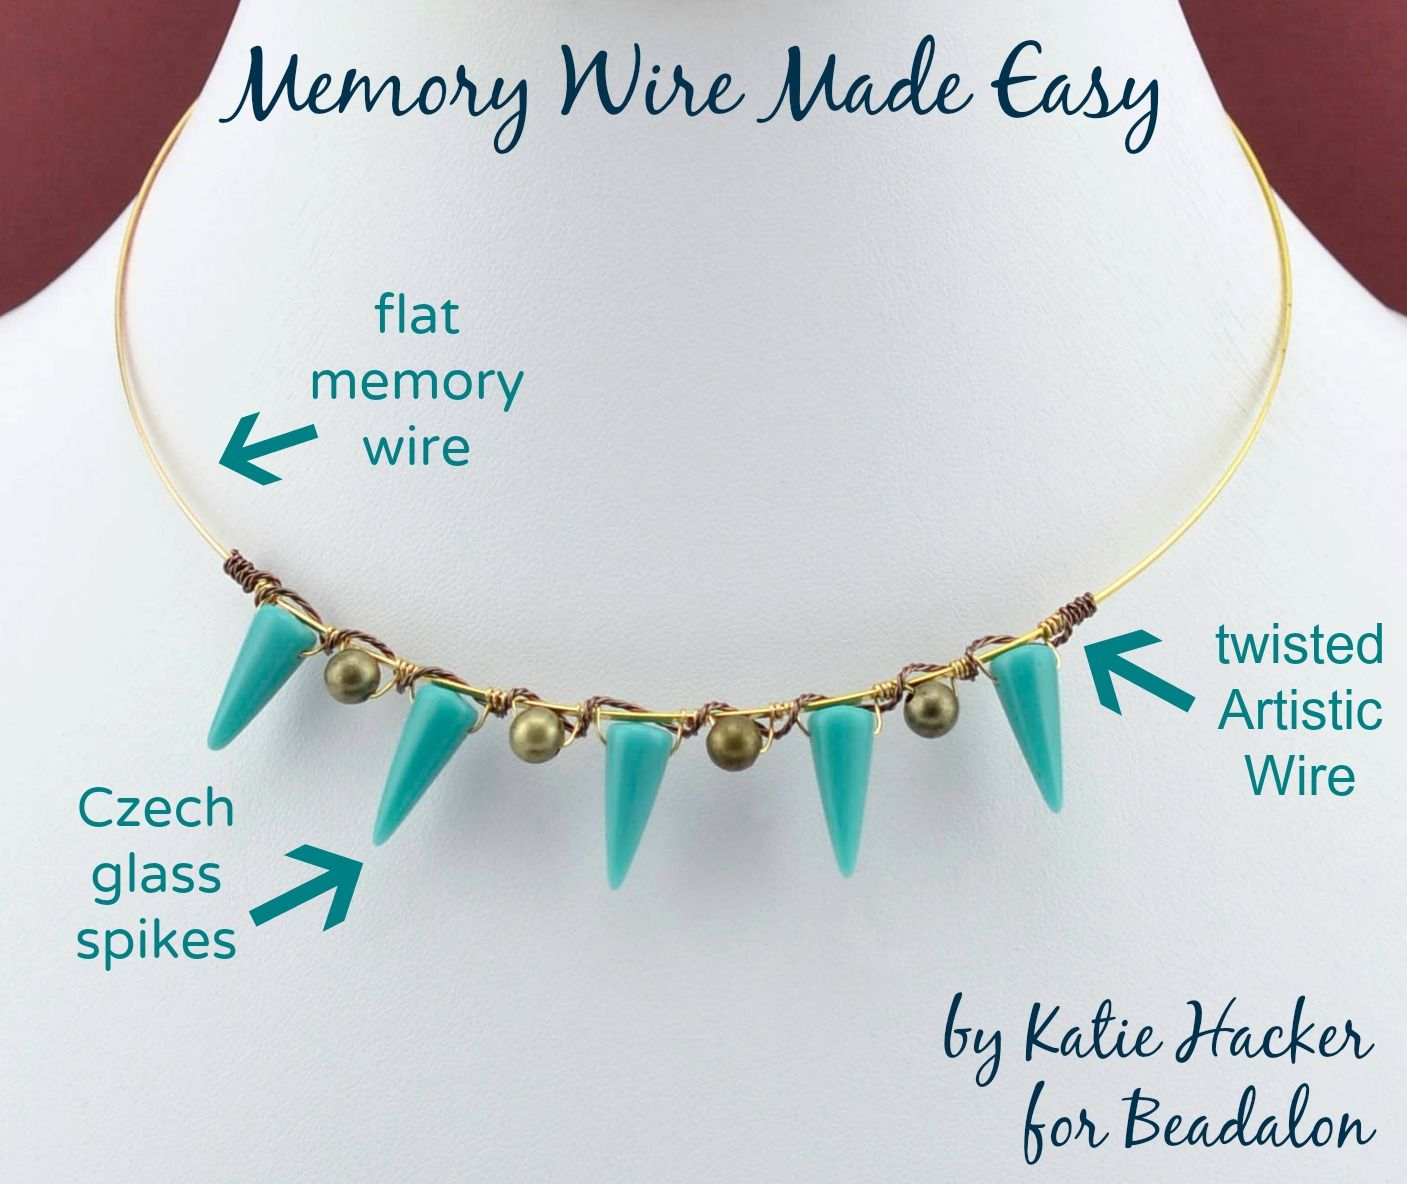 Memory Wire Made Easy Booklet